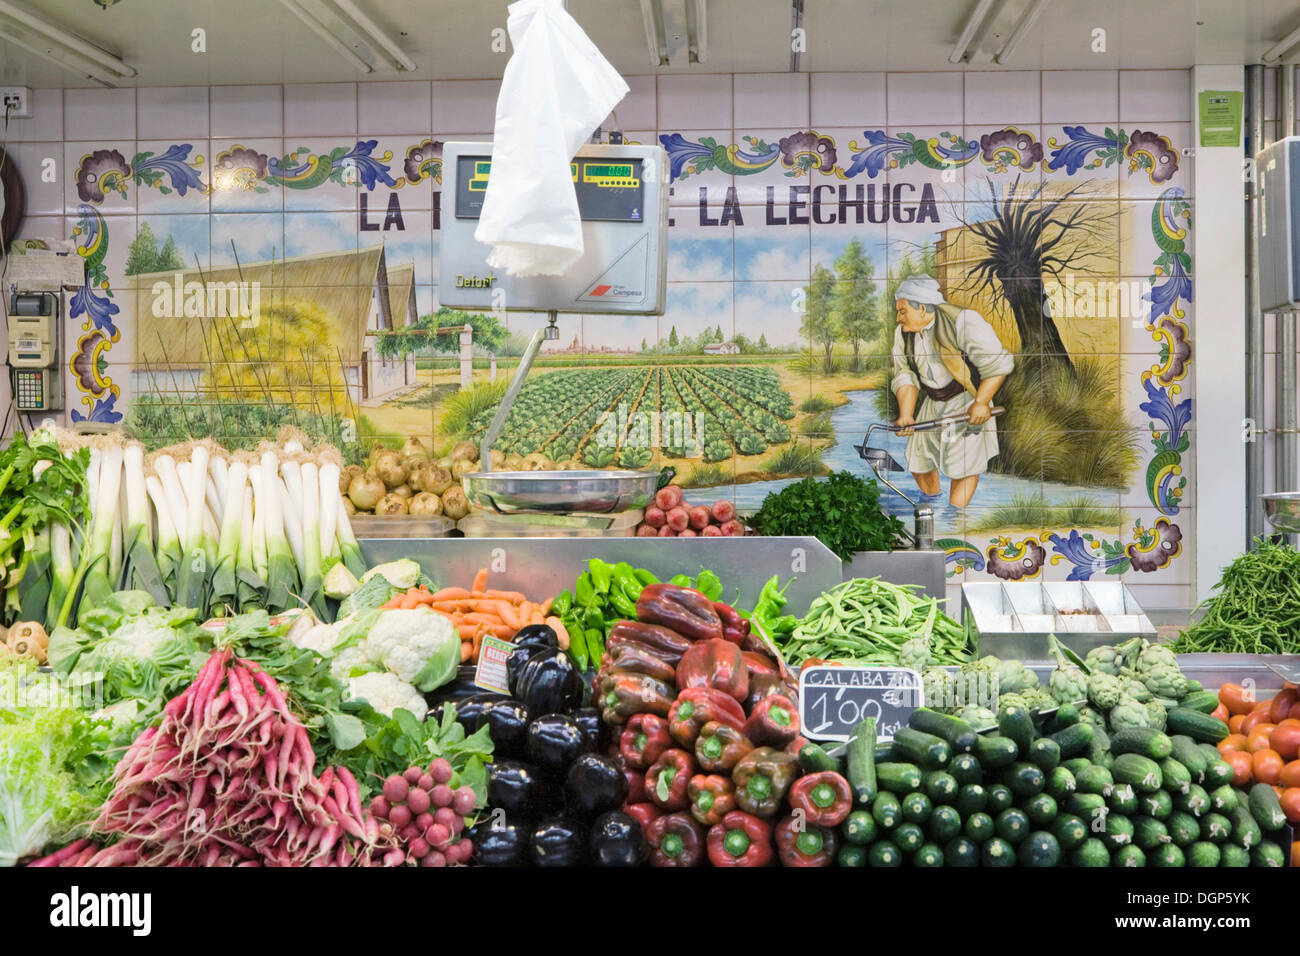 Fresh vegetables, Mercado Central market, Valencia, Comunidad Valencia, Spain, Europe Stock Photo